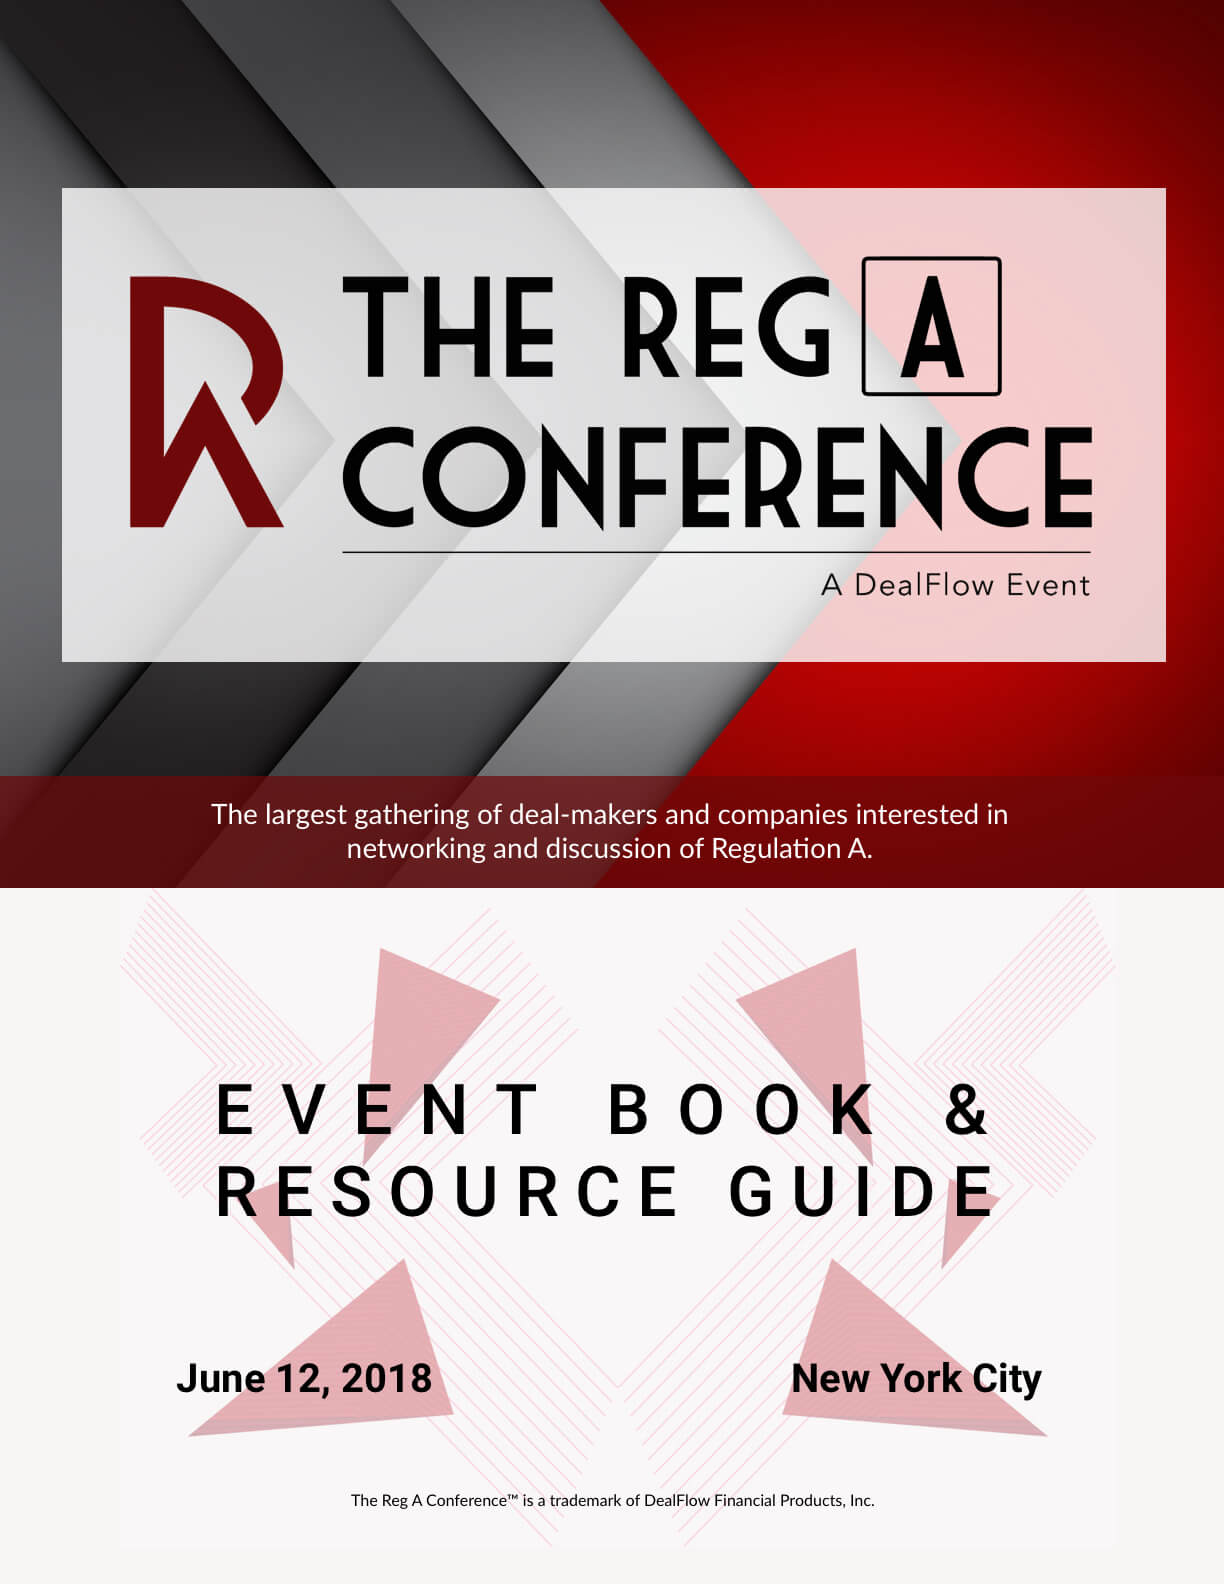 The Reg A Conference